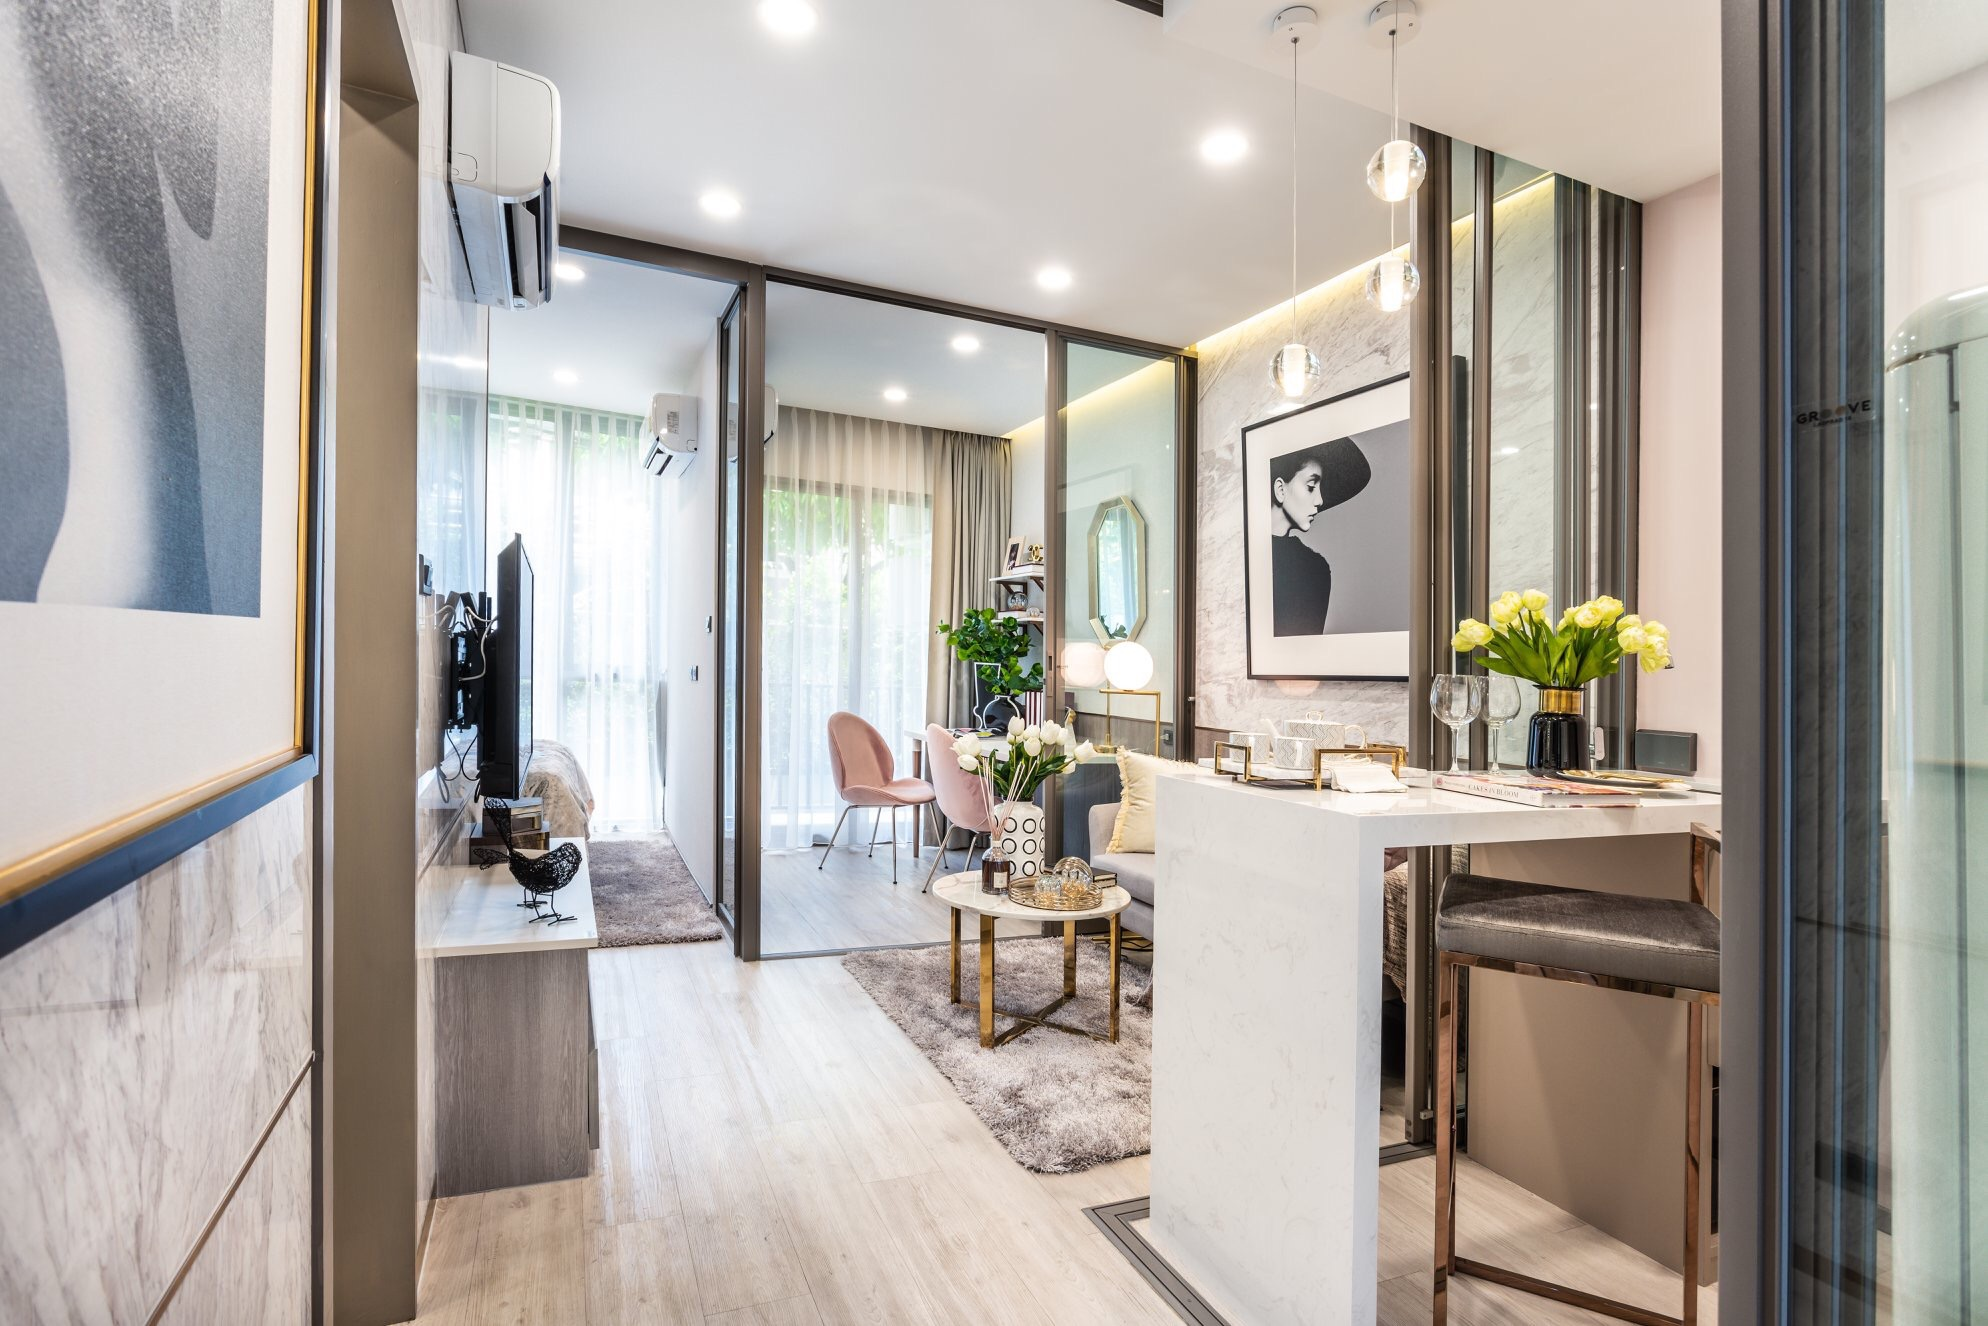 Sale DownCondoLadprao, Central Ladprao : Sell down payment 340,000 1 bedroom condo + multipurpose room with walk-in closet near MRT Ladprao Groove Vibes Ladprao 18